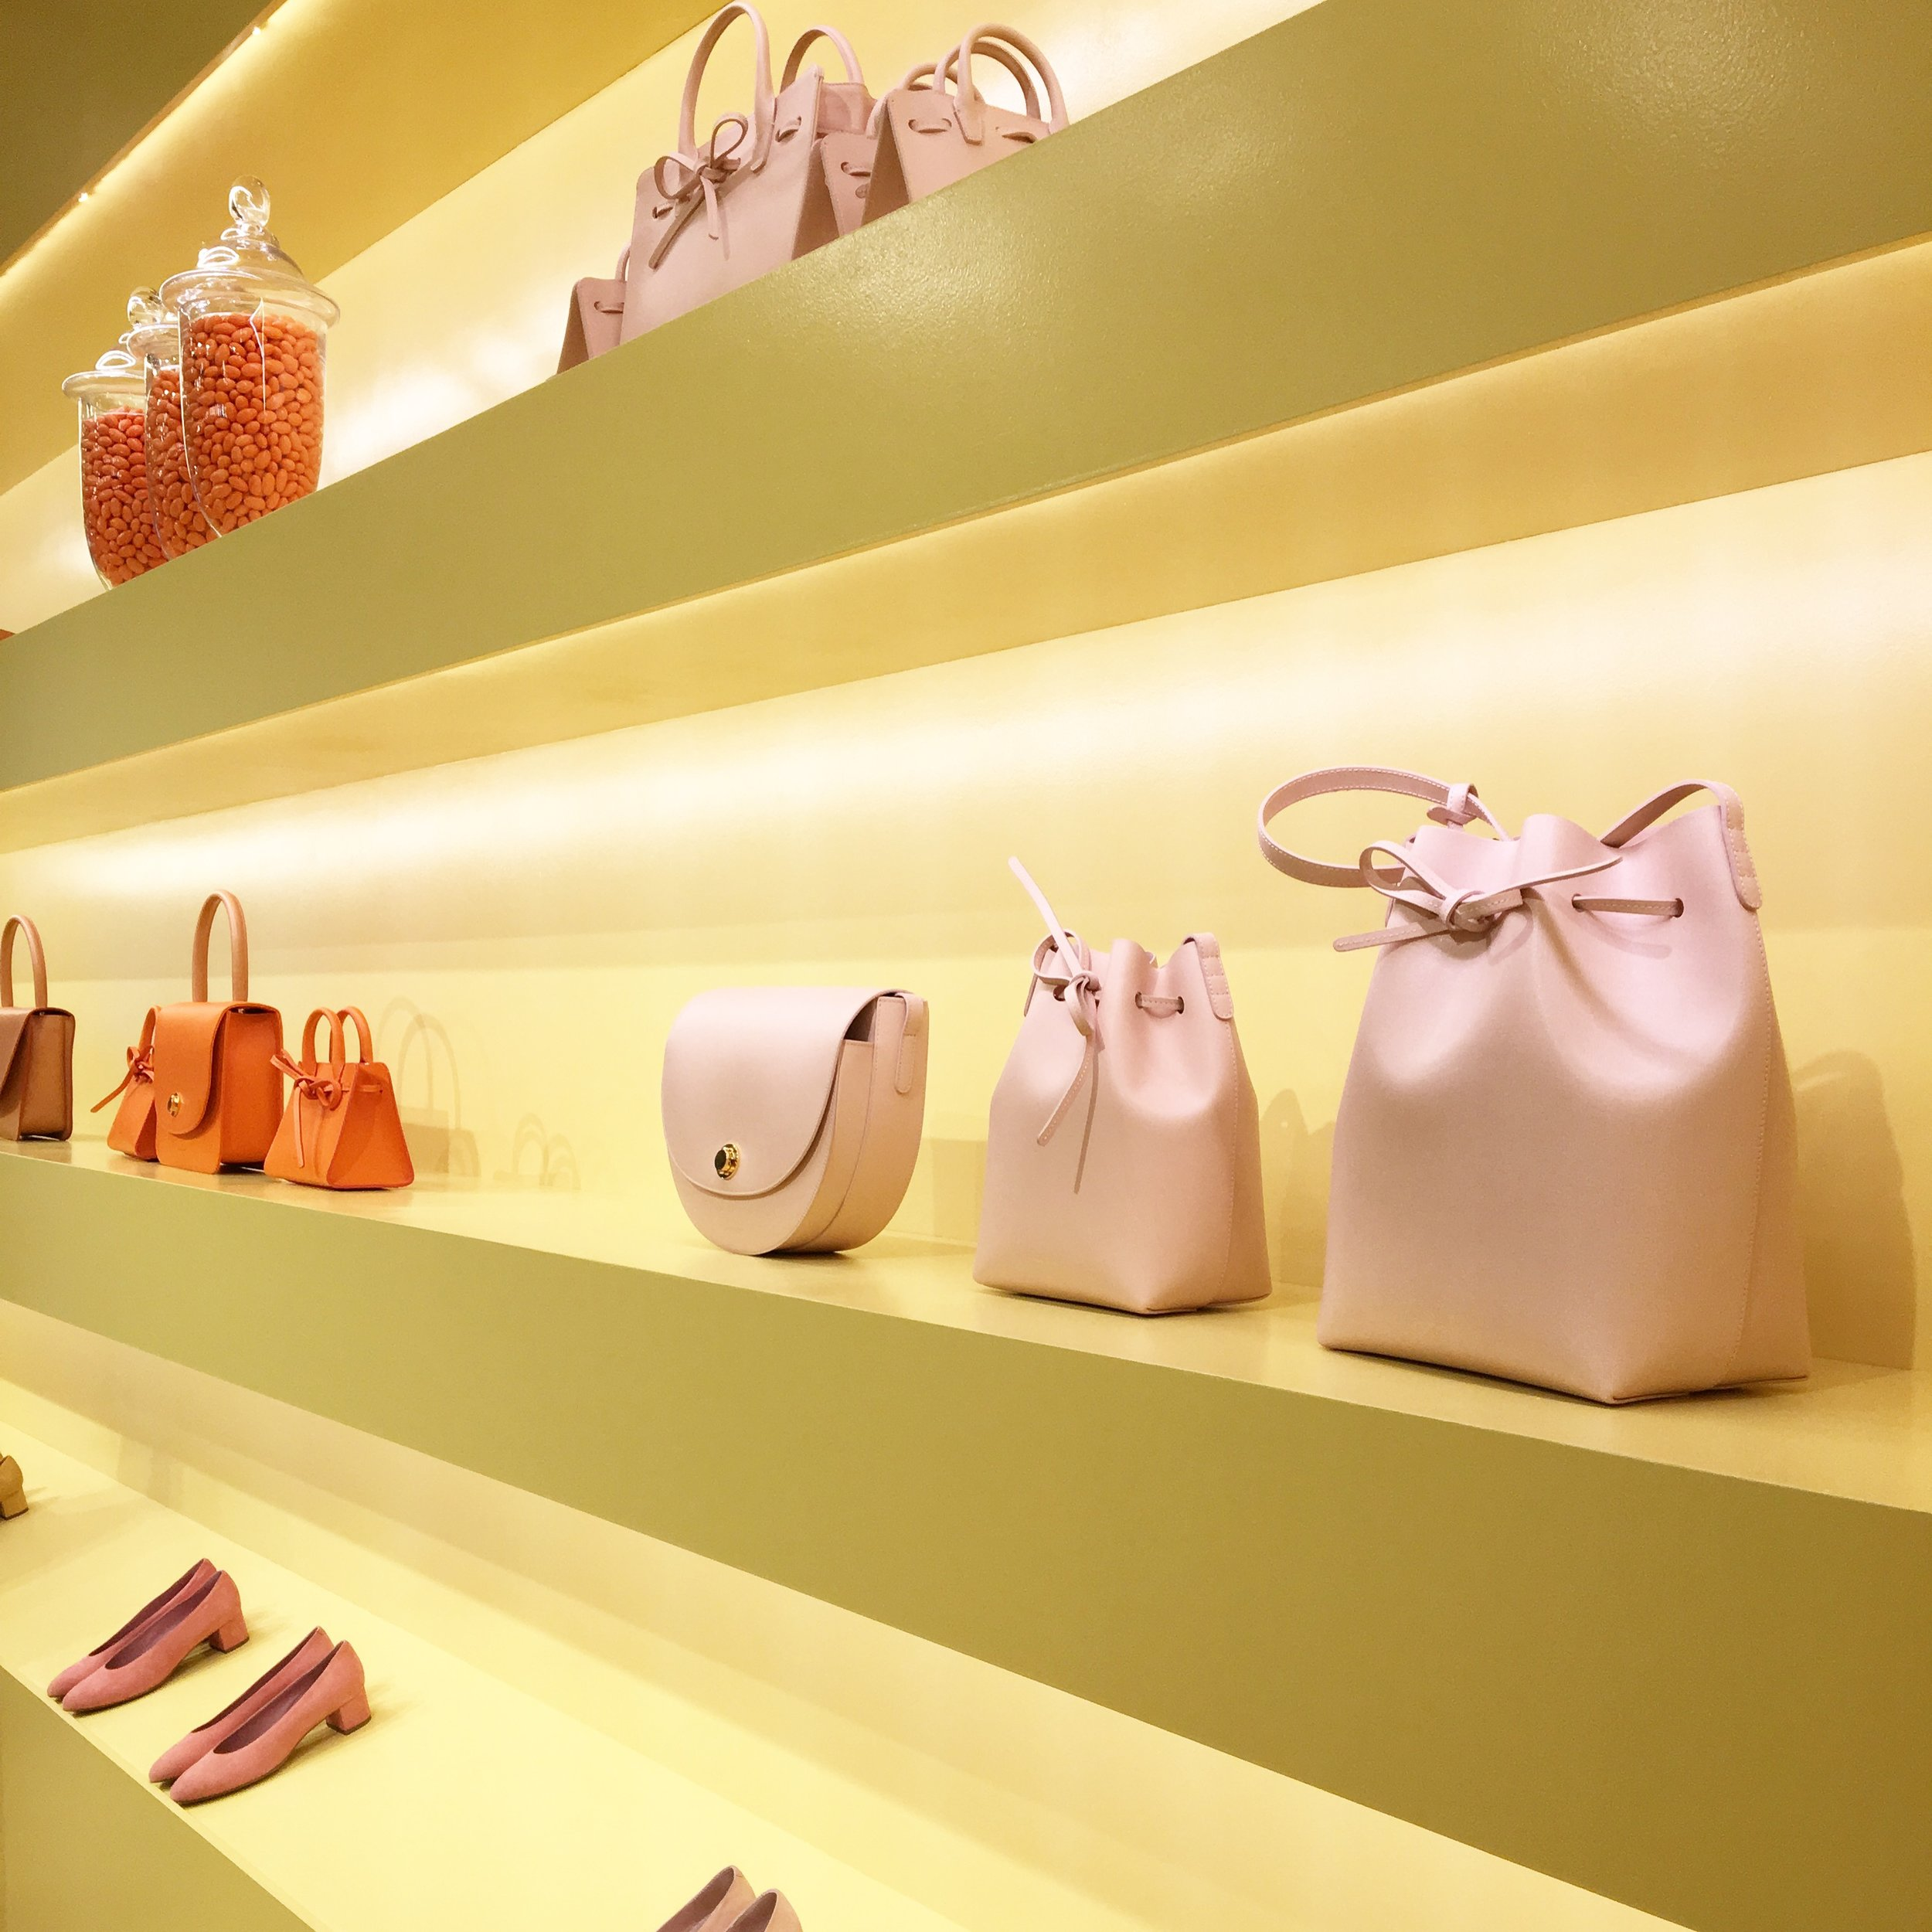 Just a few doors down is the Mansur Gavriel Pop-Up. Such a colorful space filled with all the bags and shoes a girl dreams of!